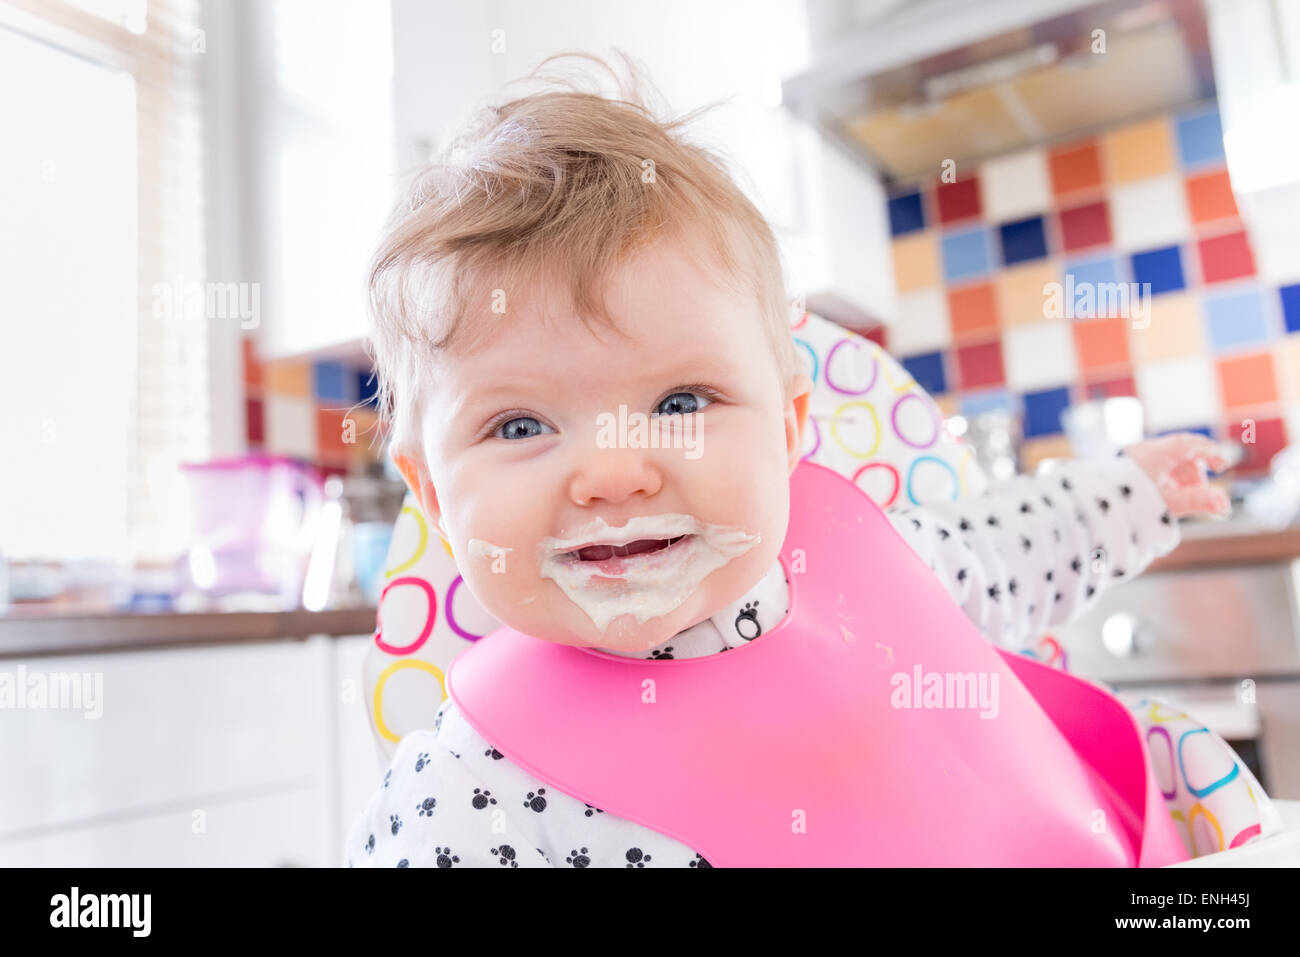 Six month old baby girl with messy face after feeding on porridge - Stock Image